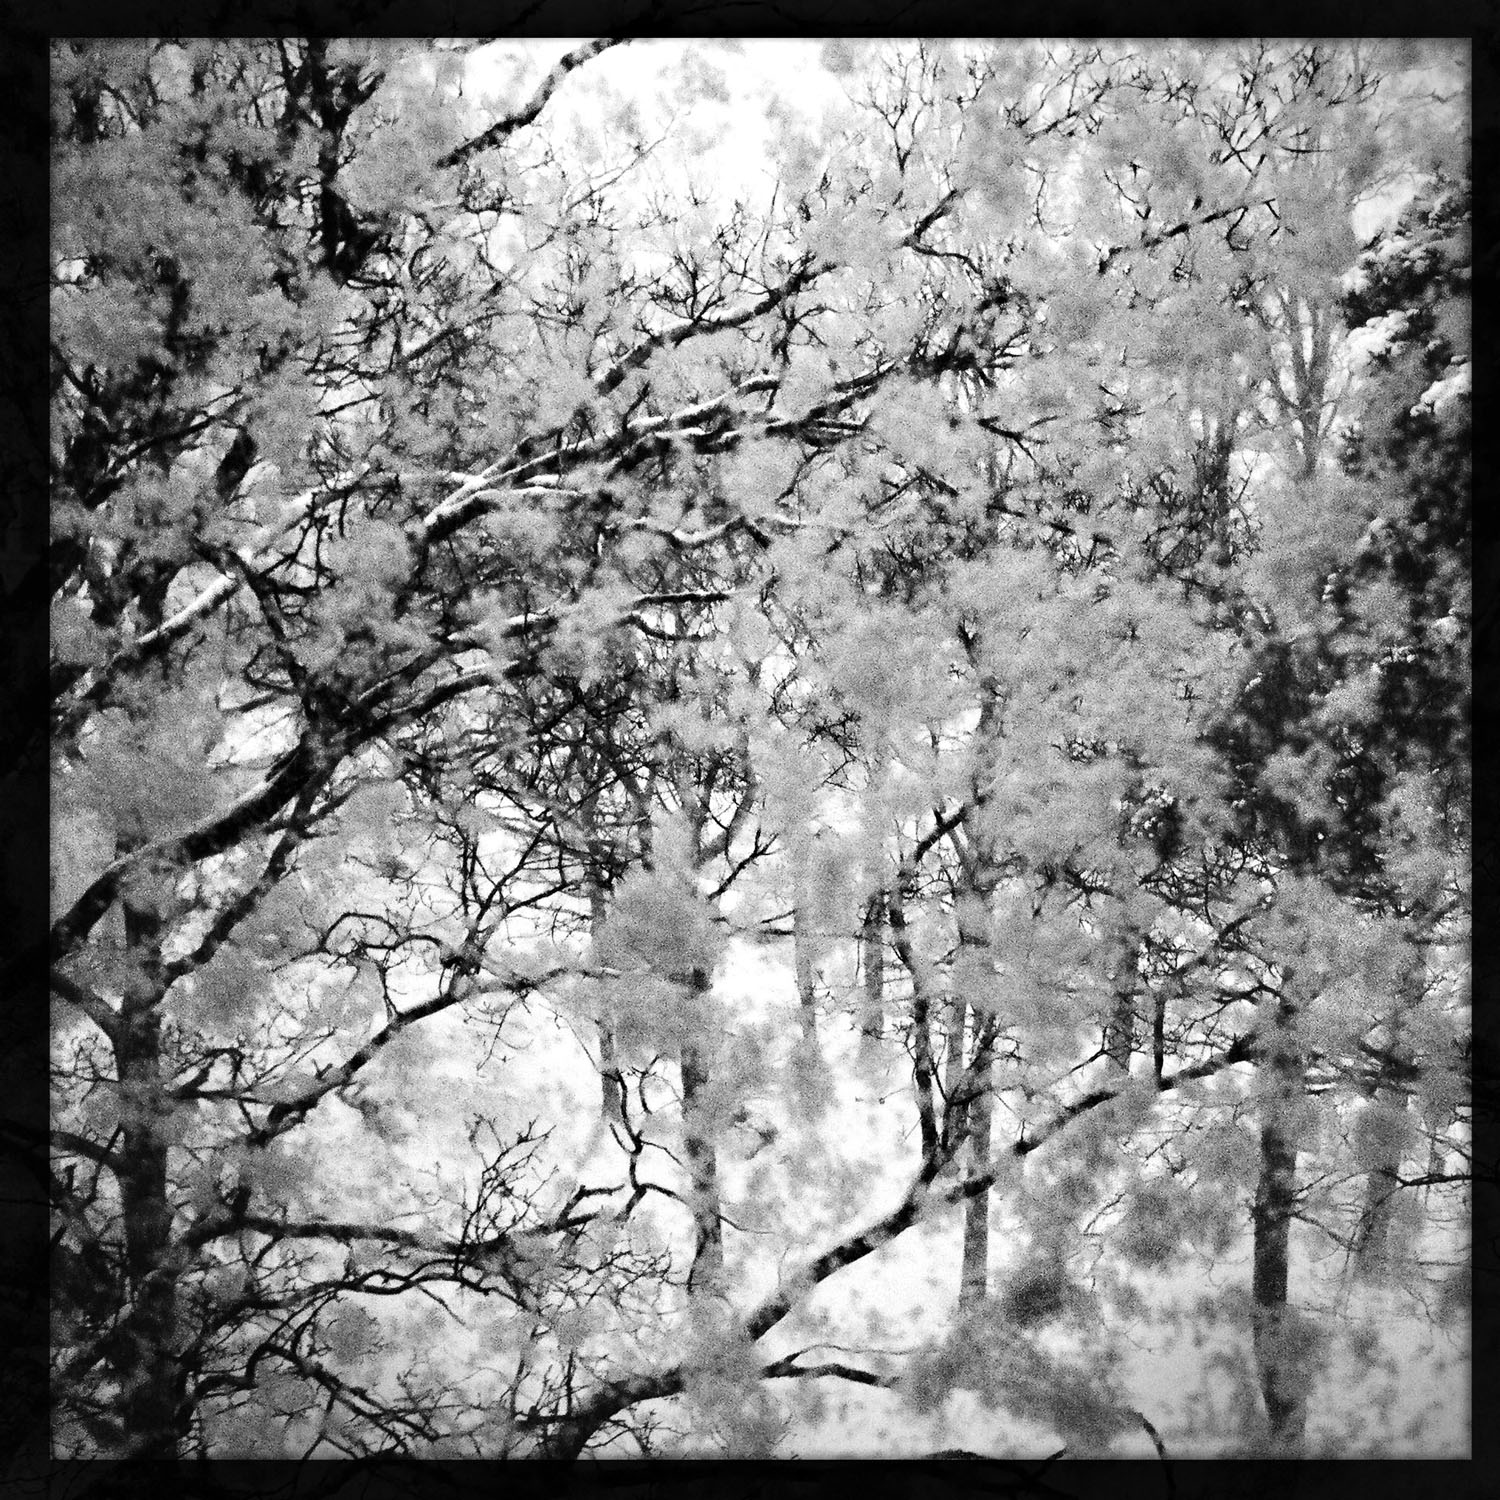 mobile photography: Snowed In